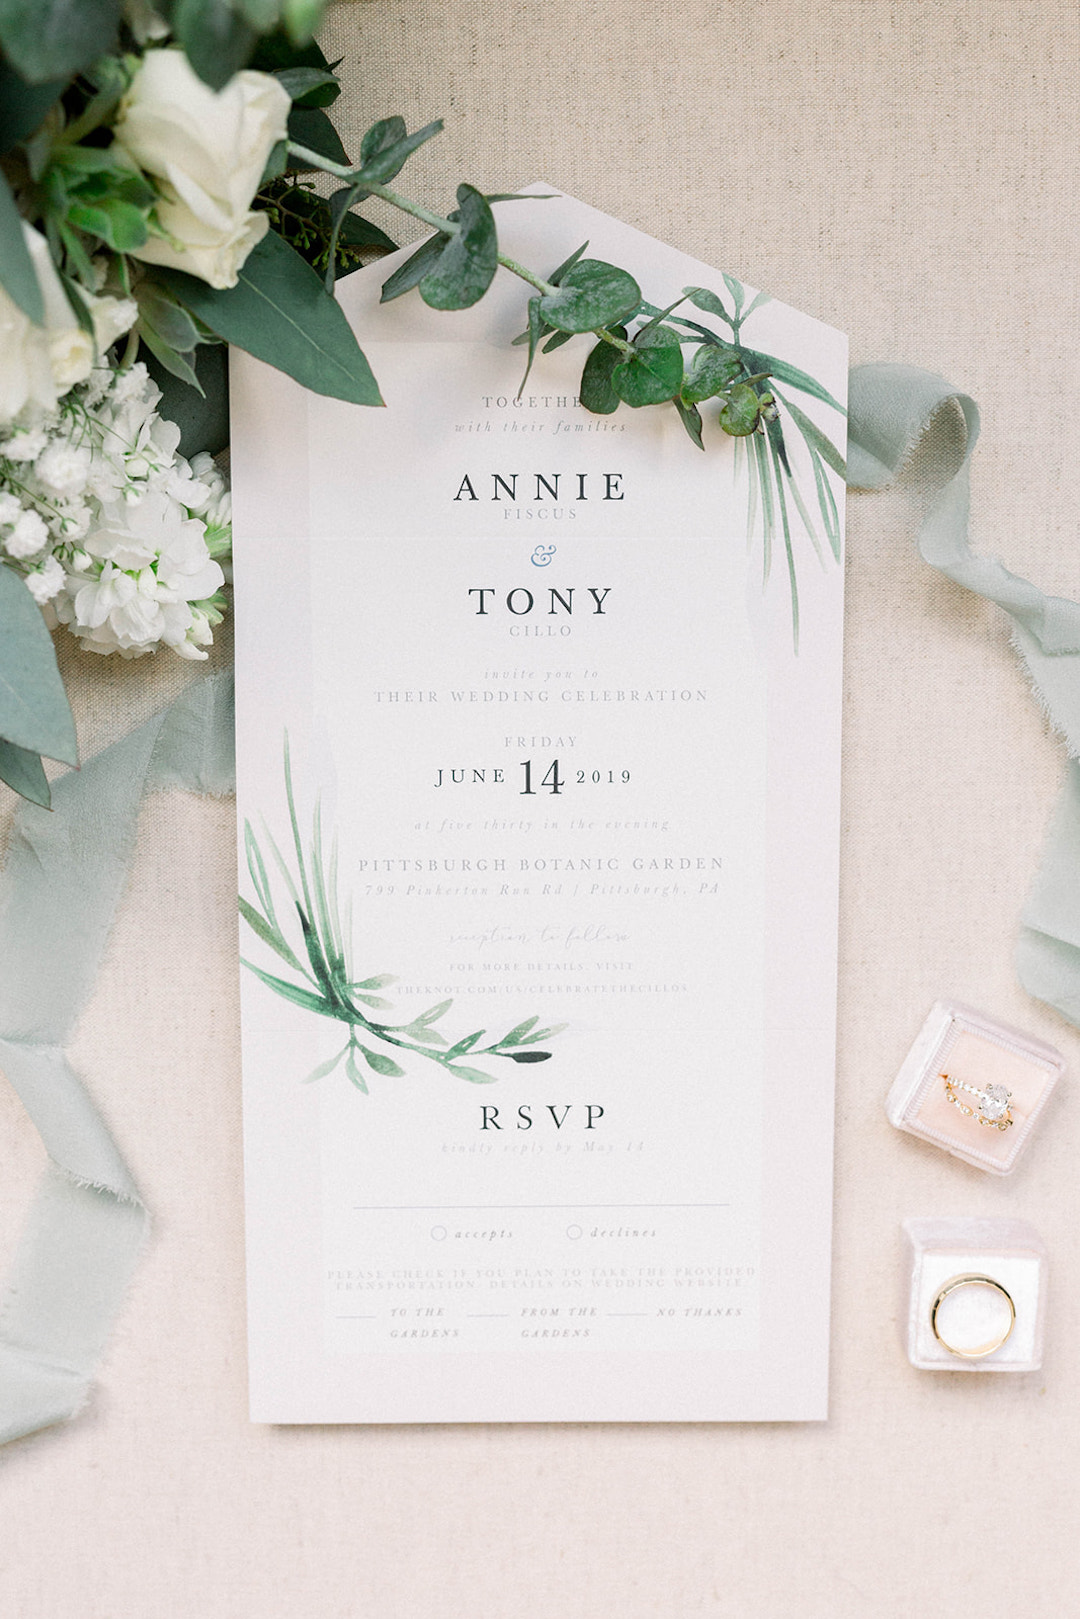 Clean and Crisp Wedding Invitation: Pittsburgh Botanic Garden wedding planned by Exhale Events. See more wedding inspiration at exhale-events.com!